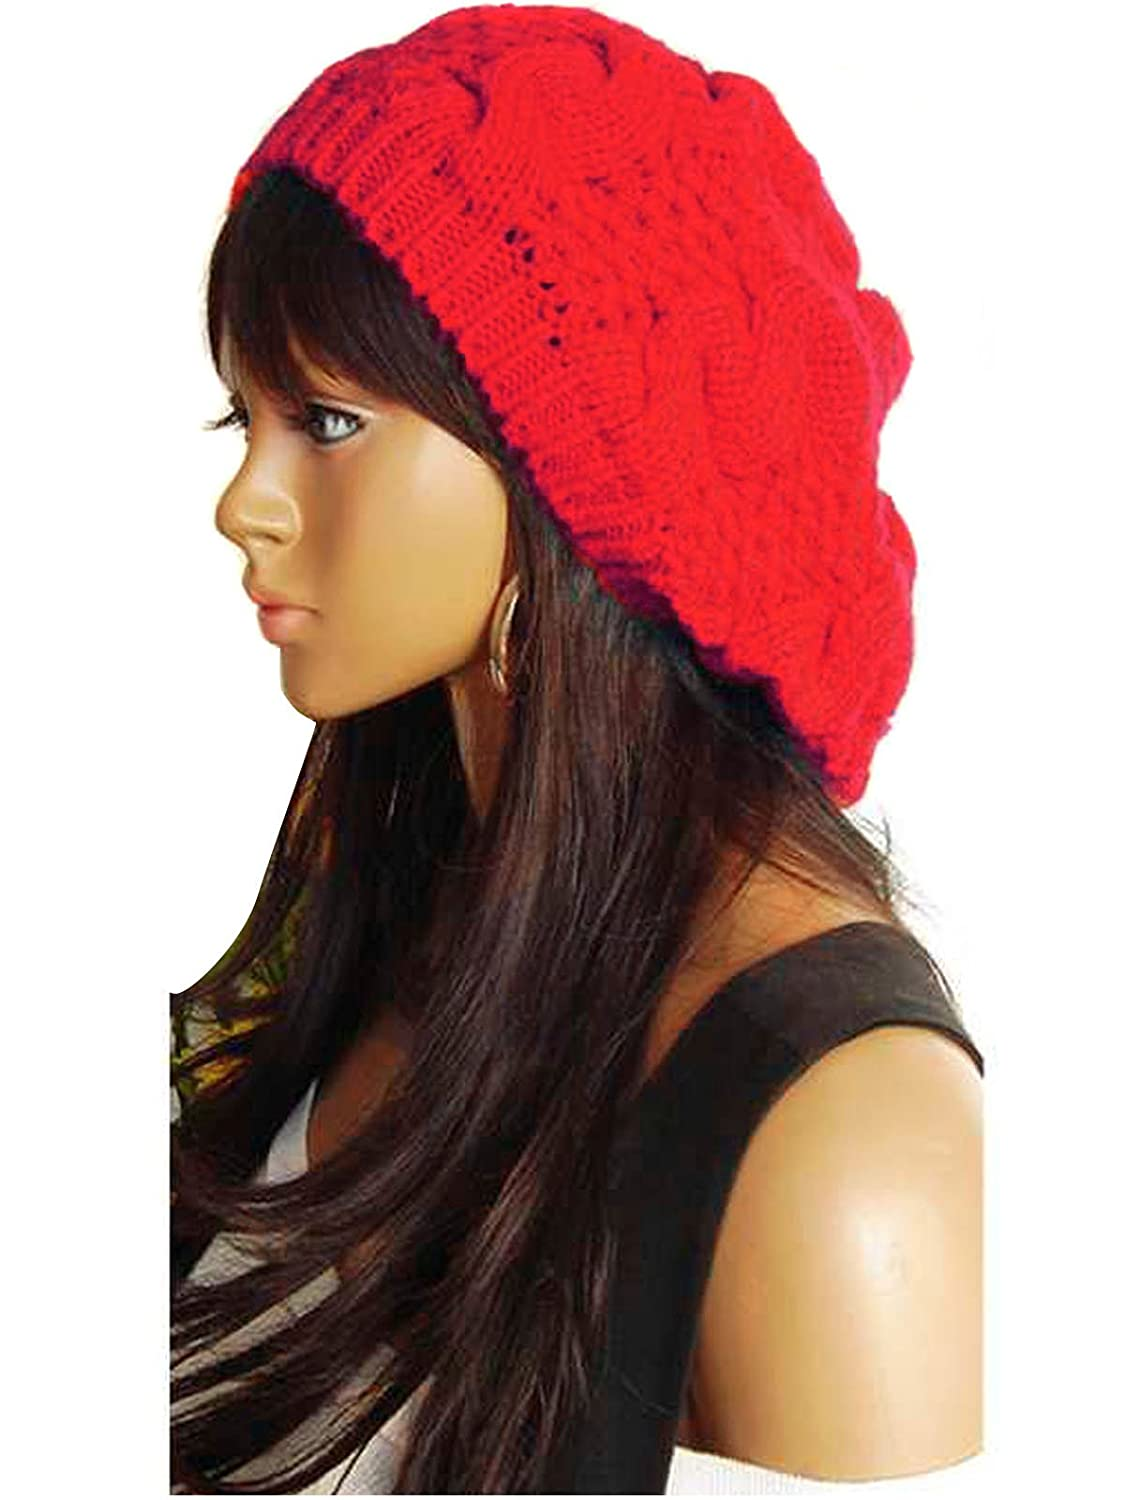 Women Beret Braided Baggy Beanie Crochet Knitting Warm Winter Wool Hat Ski Cap Red